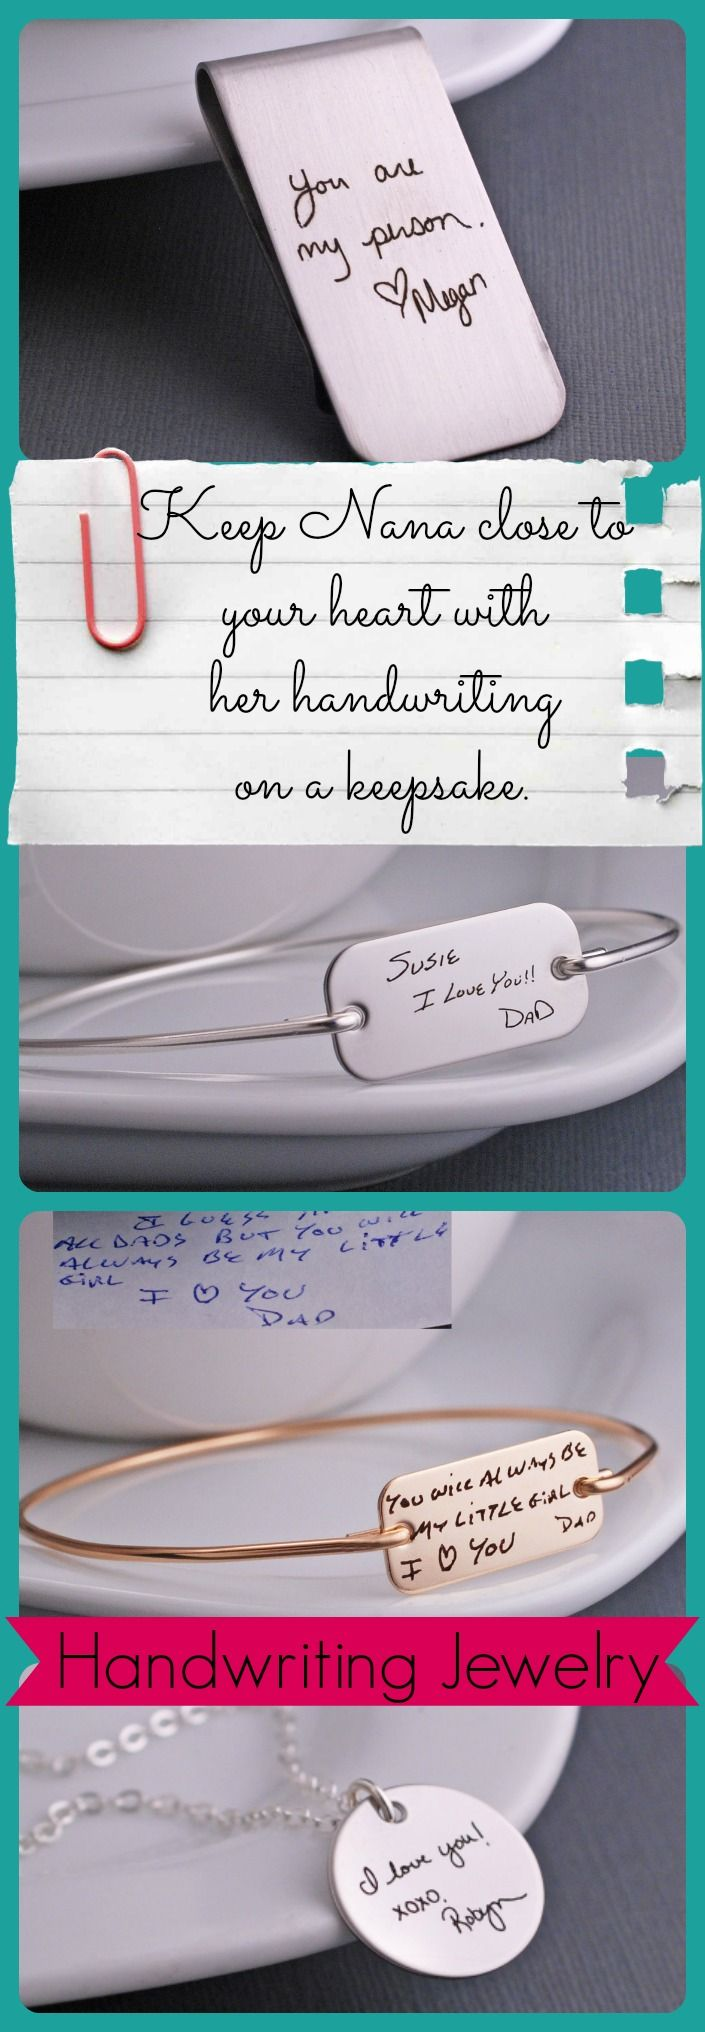 Your actual handwriting on a custom piece of jewelry or keepsake. Whether Grandpa's signature, a note from Nana, or a quick message on a post it, it can be engraved on a custom piece.